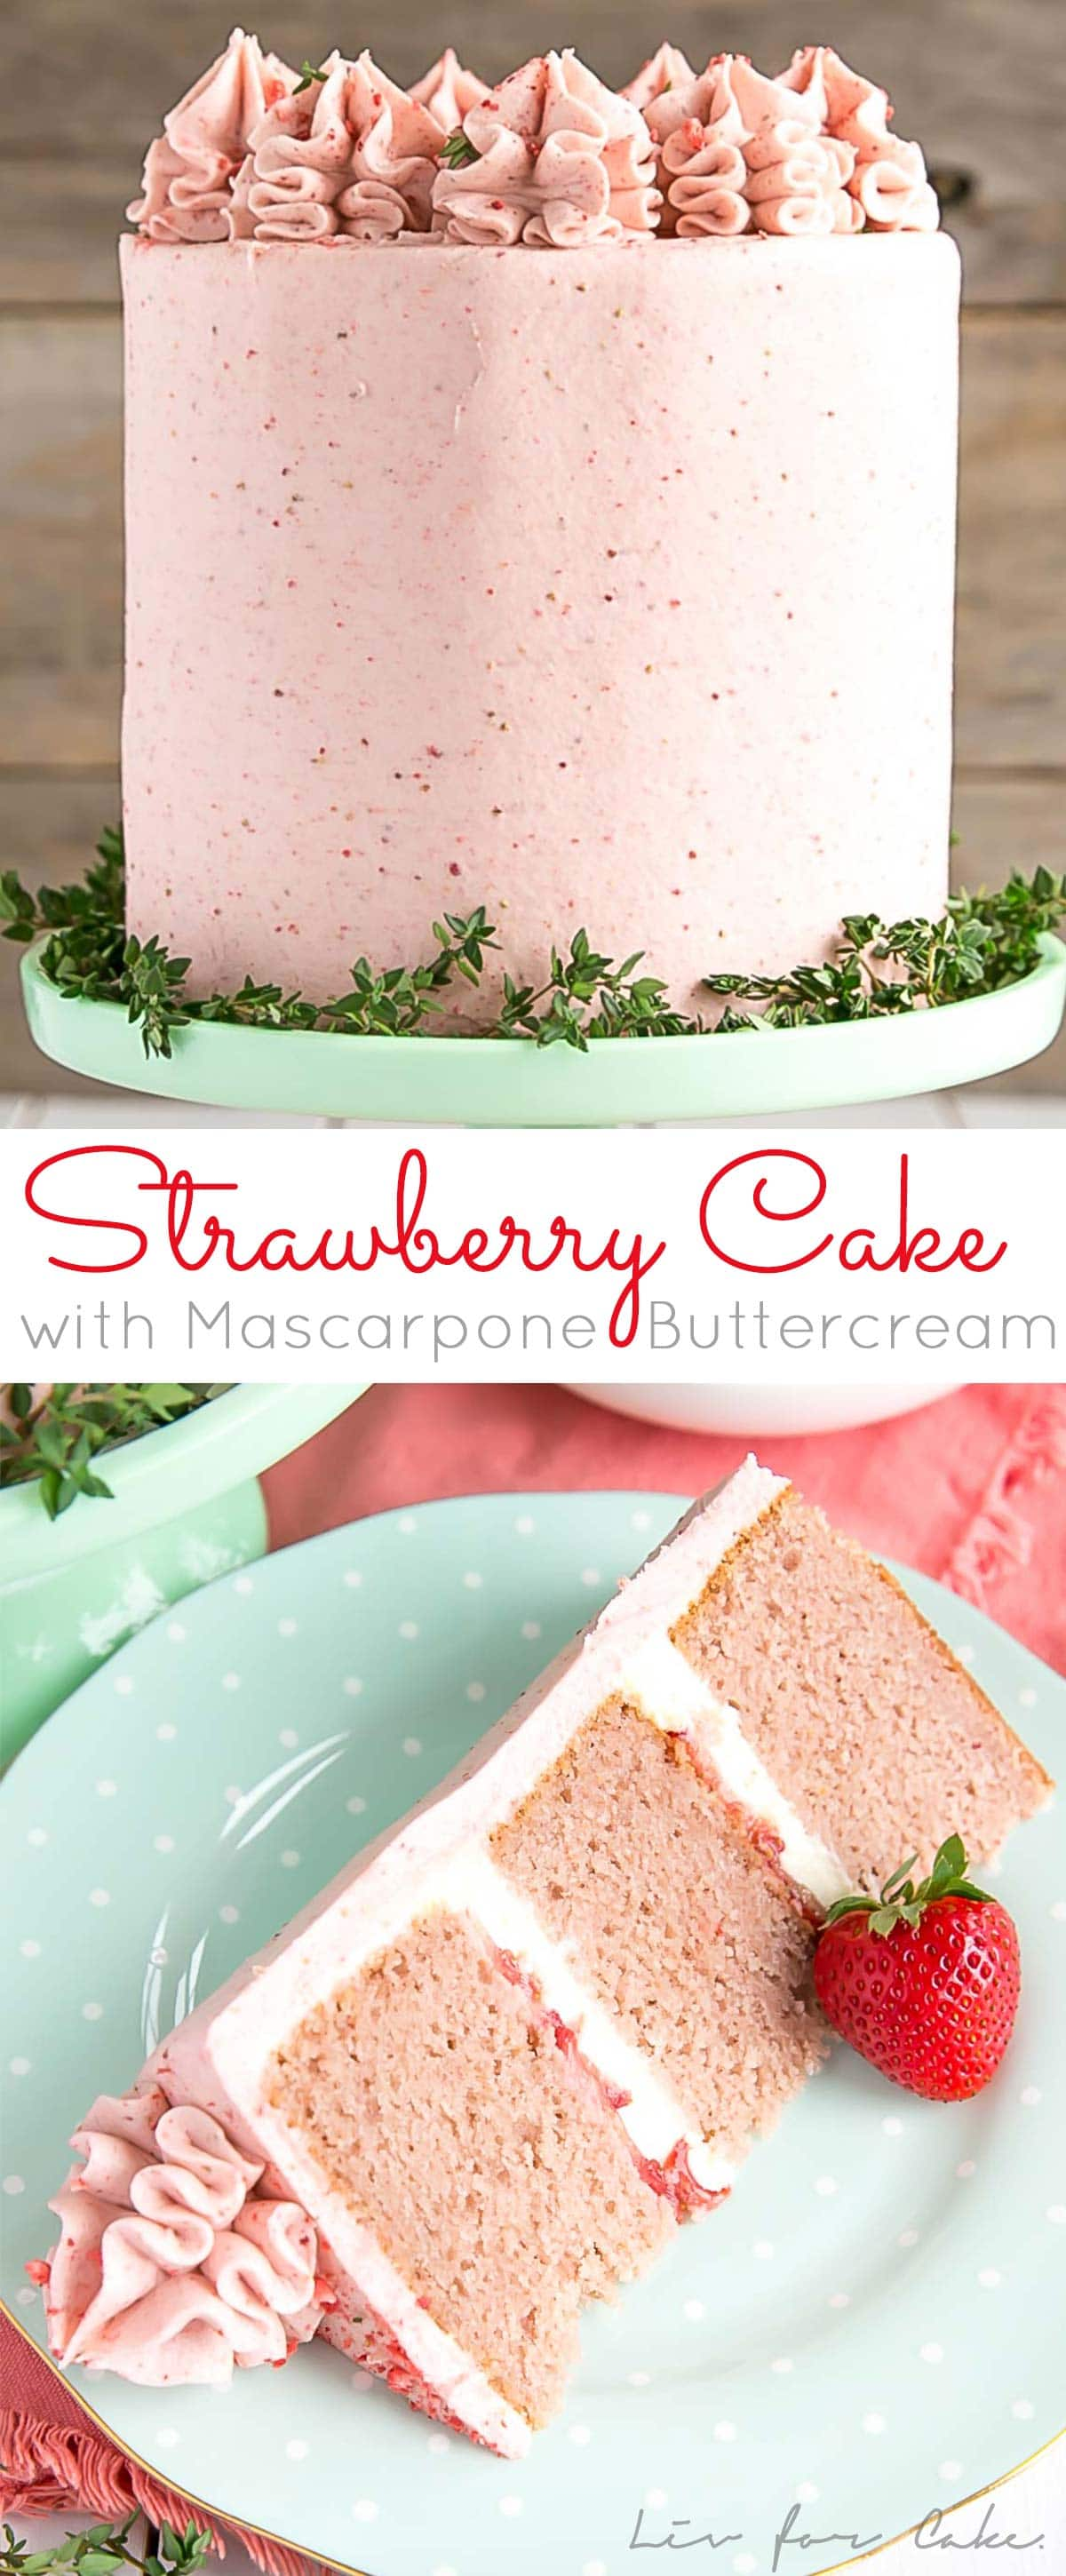 Strawberry Cake with Mascarpone buttercream